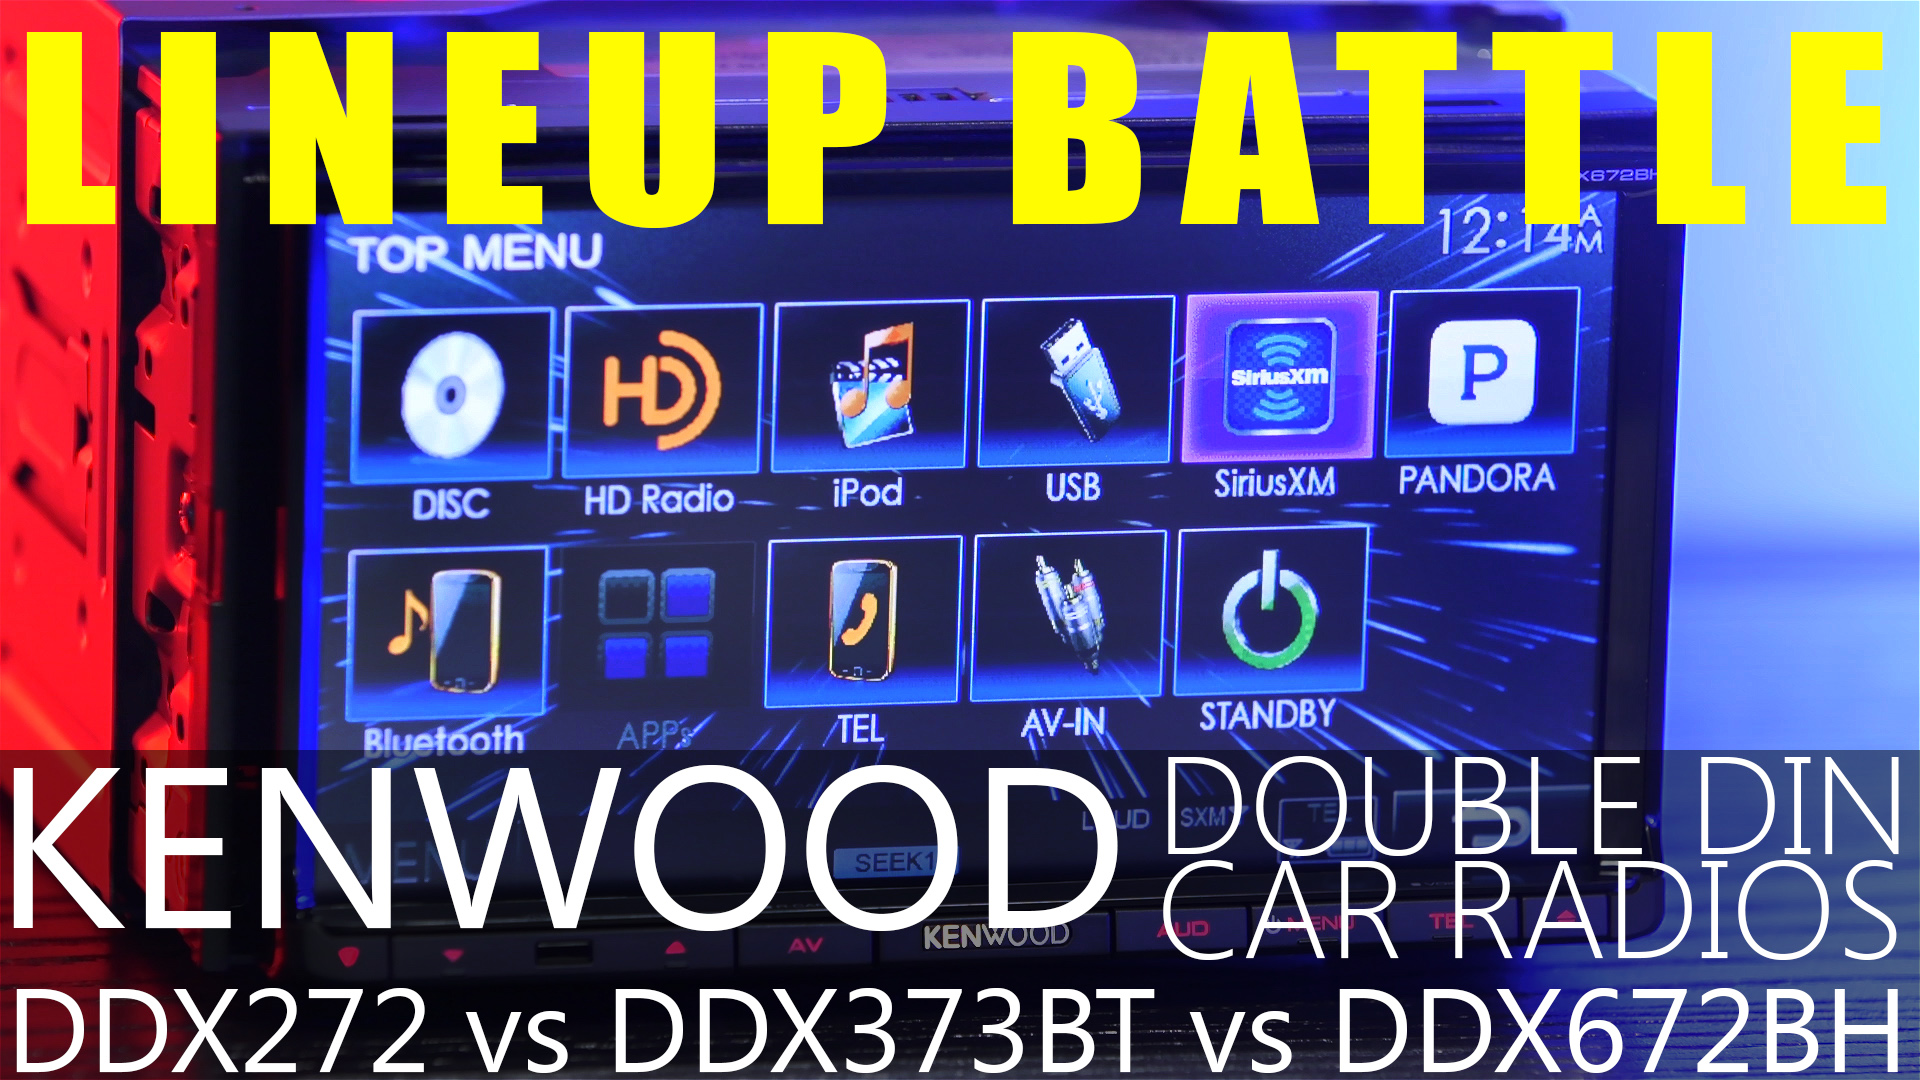 Kenwood DDX272 vs. DDX372BT vs. DDX672BH :: Double DIN line up battle